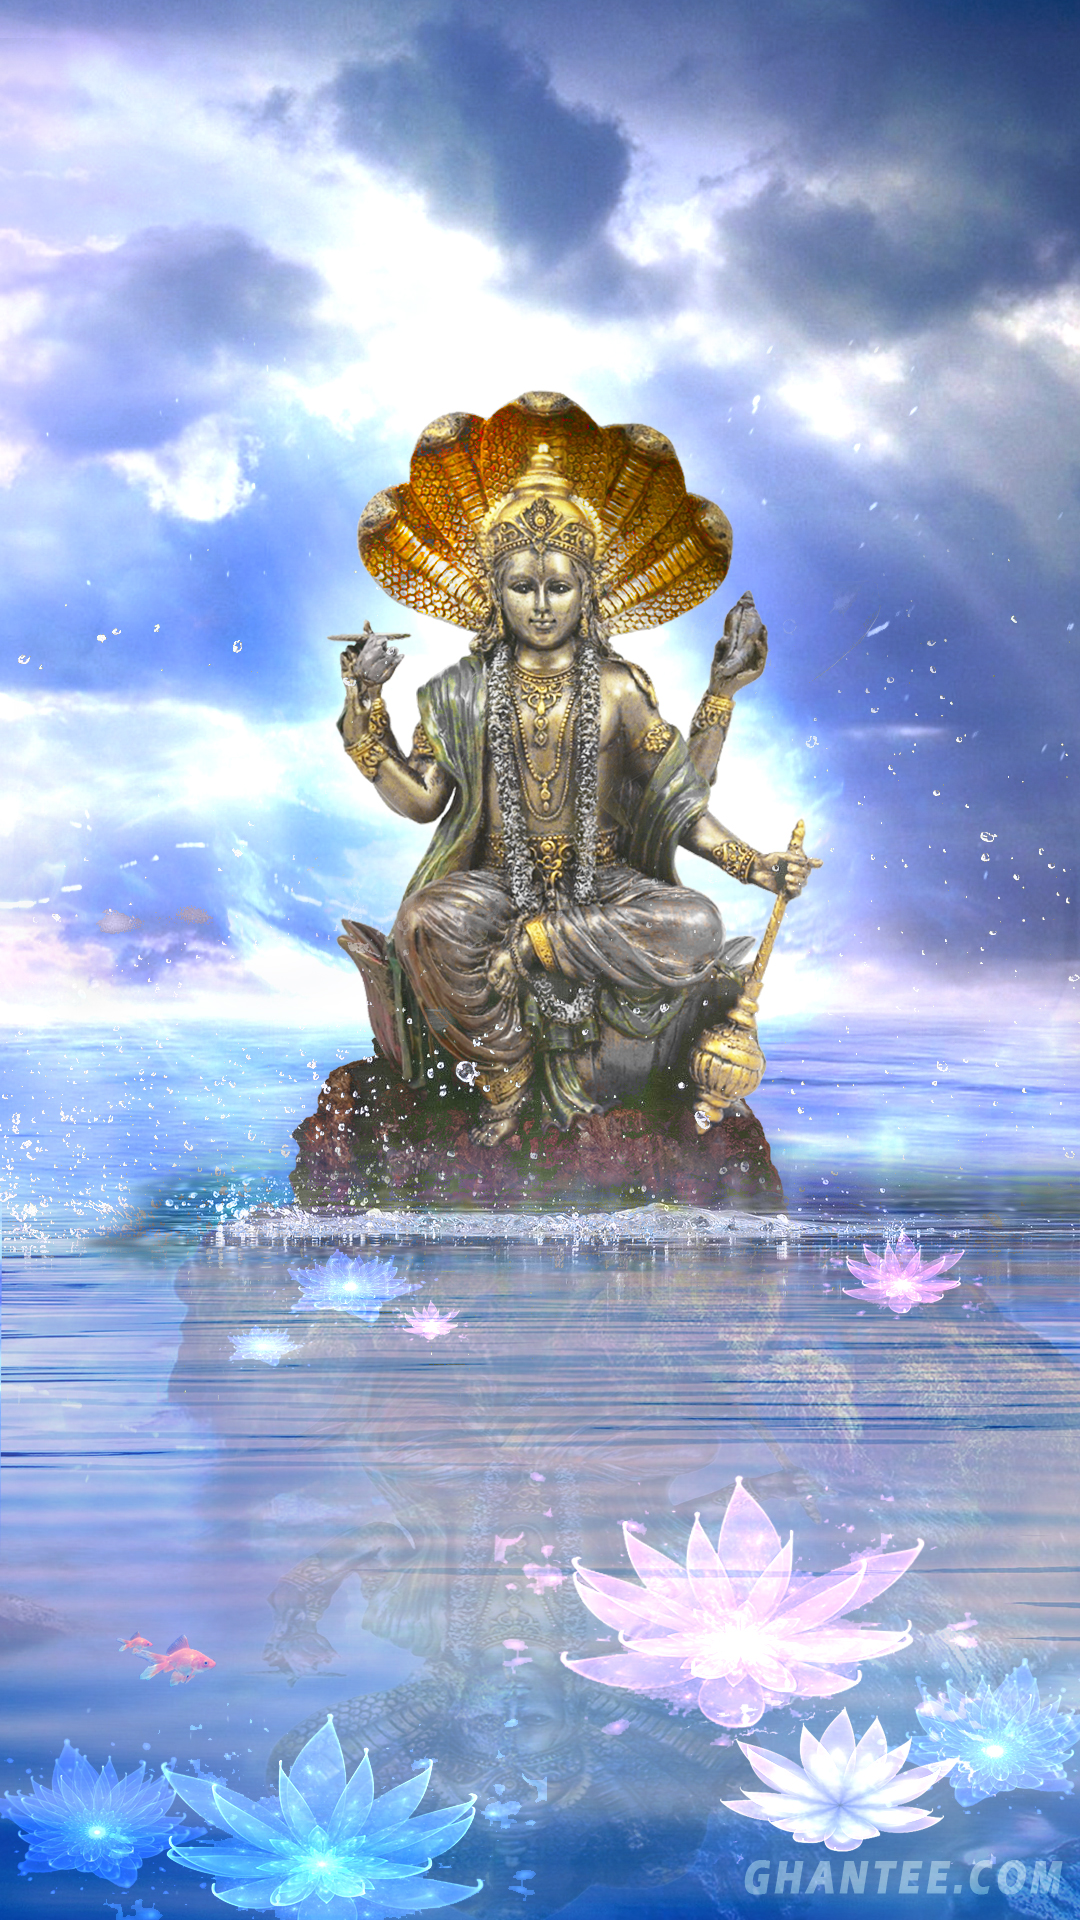 16 epic god wallpapers from India